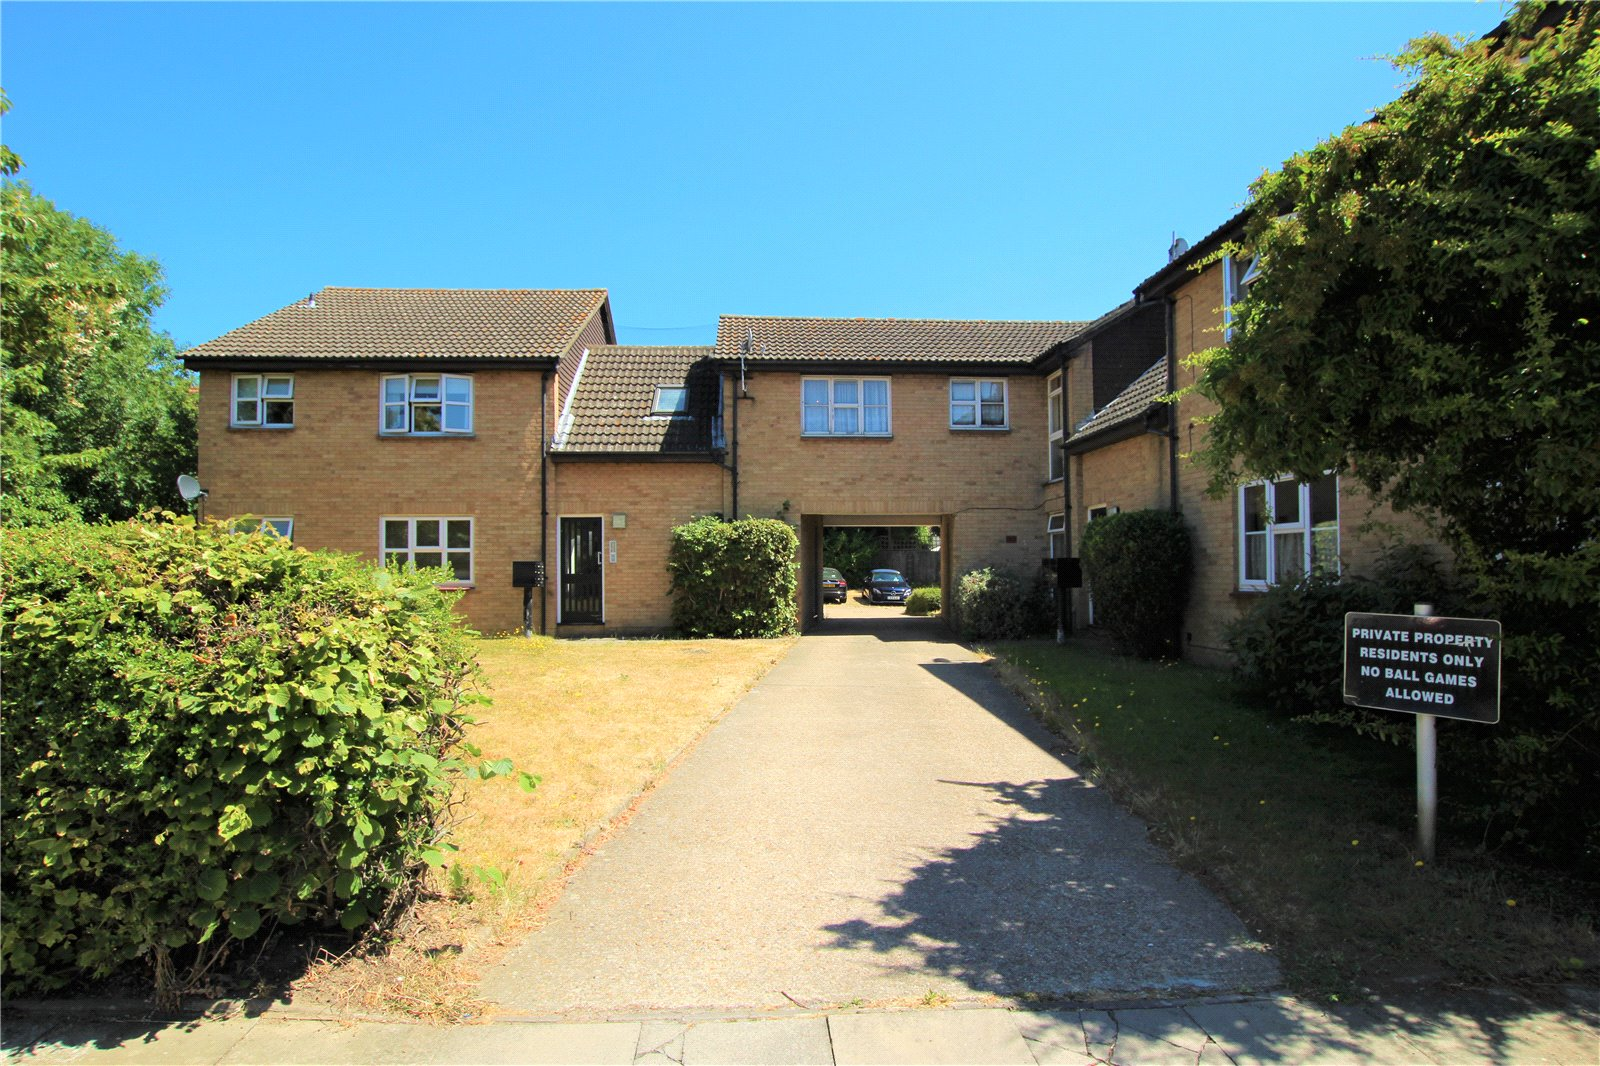 Rider Close, Blackfen, Kent, DA15